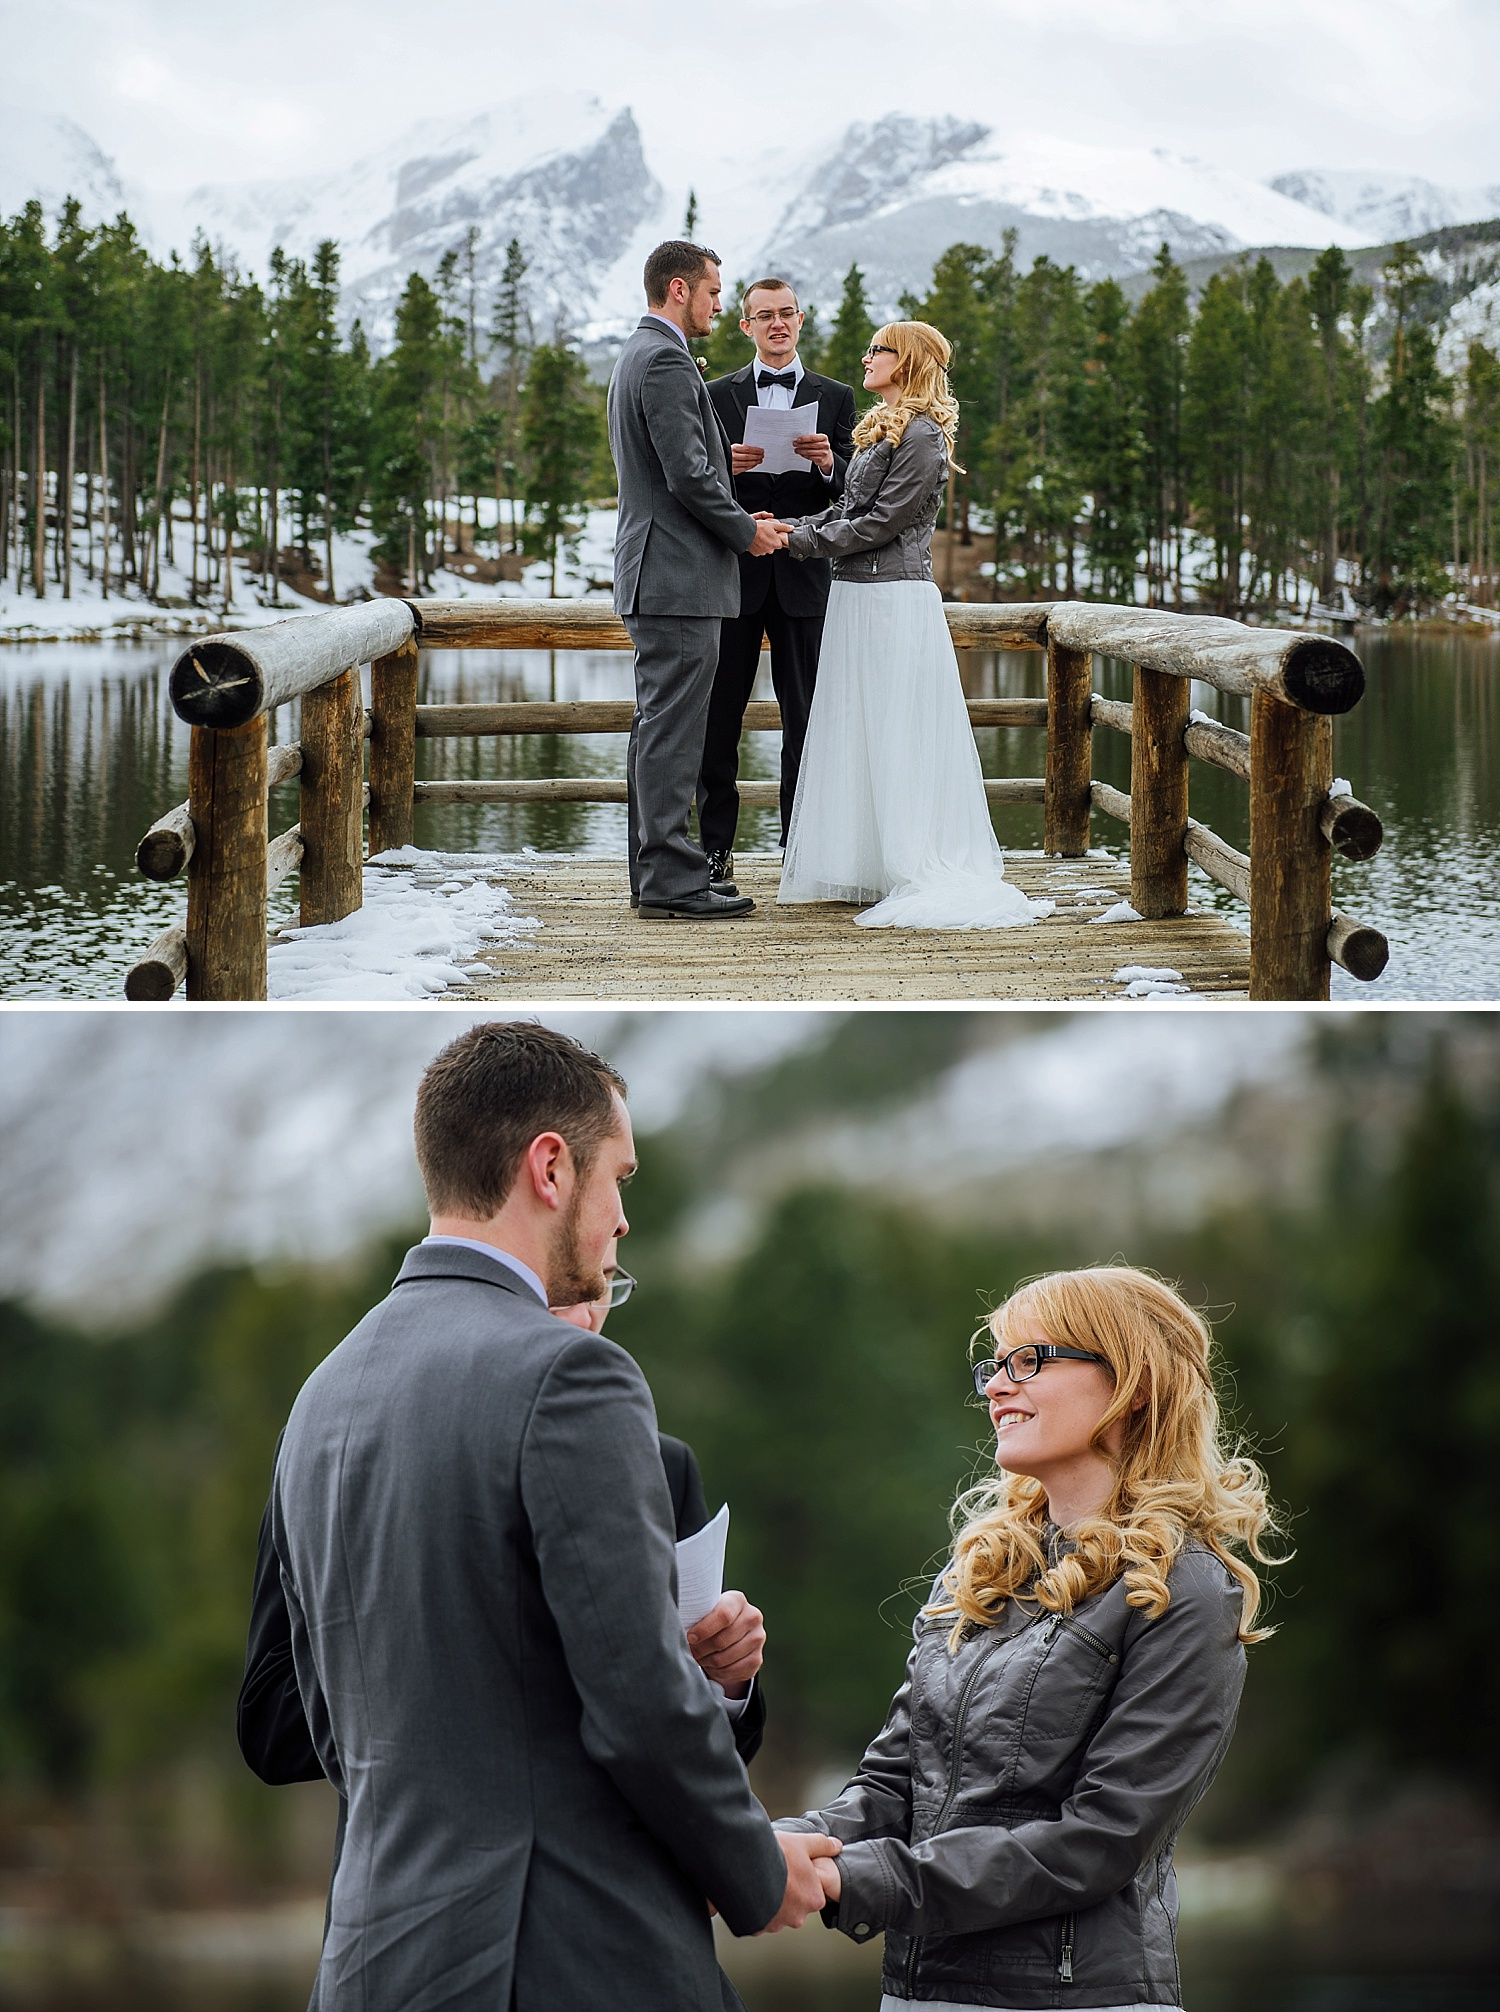 This was taken at Sprague Lake in Rocky Mountain National Park. I can't even believe this location - it's a fairytale winter wedding! Photo by Maddie Mae Photography